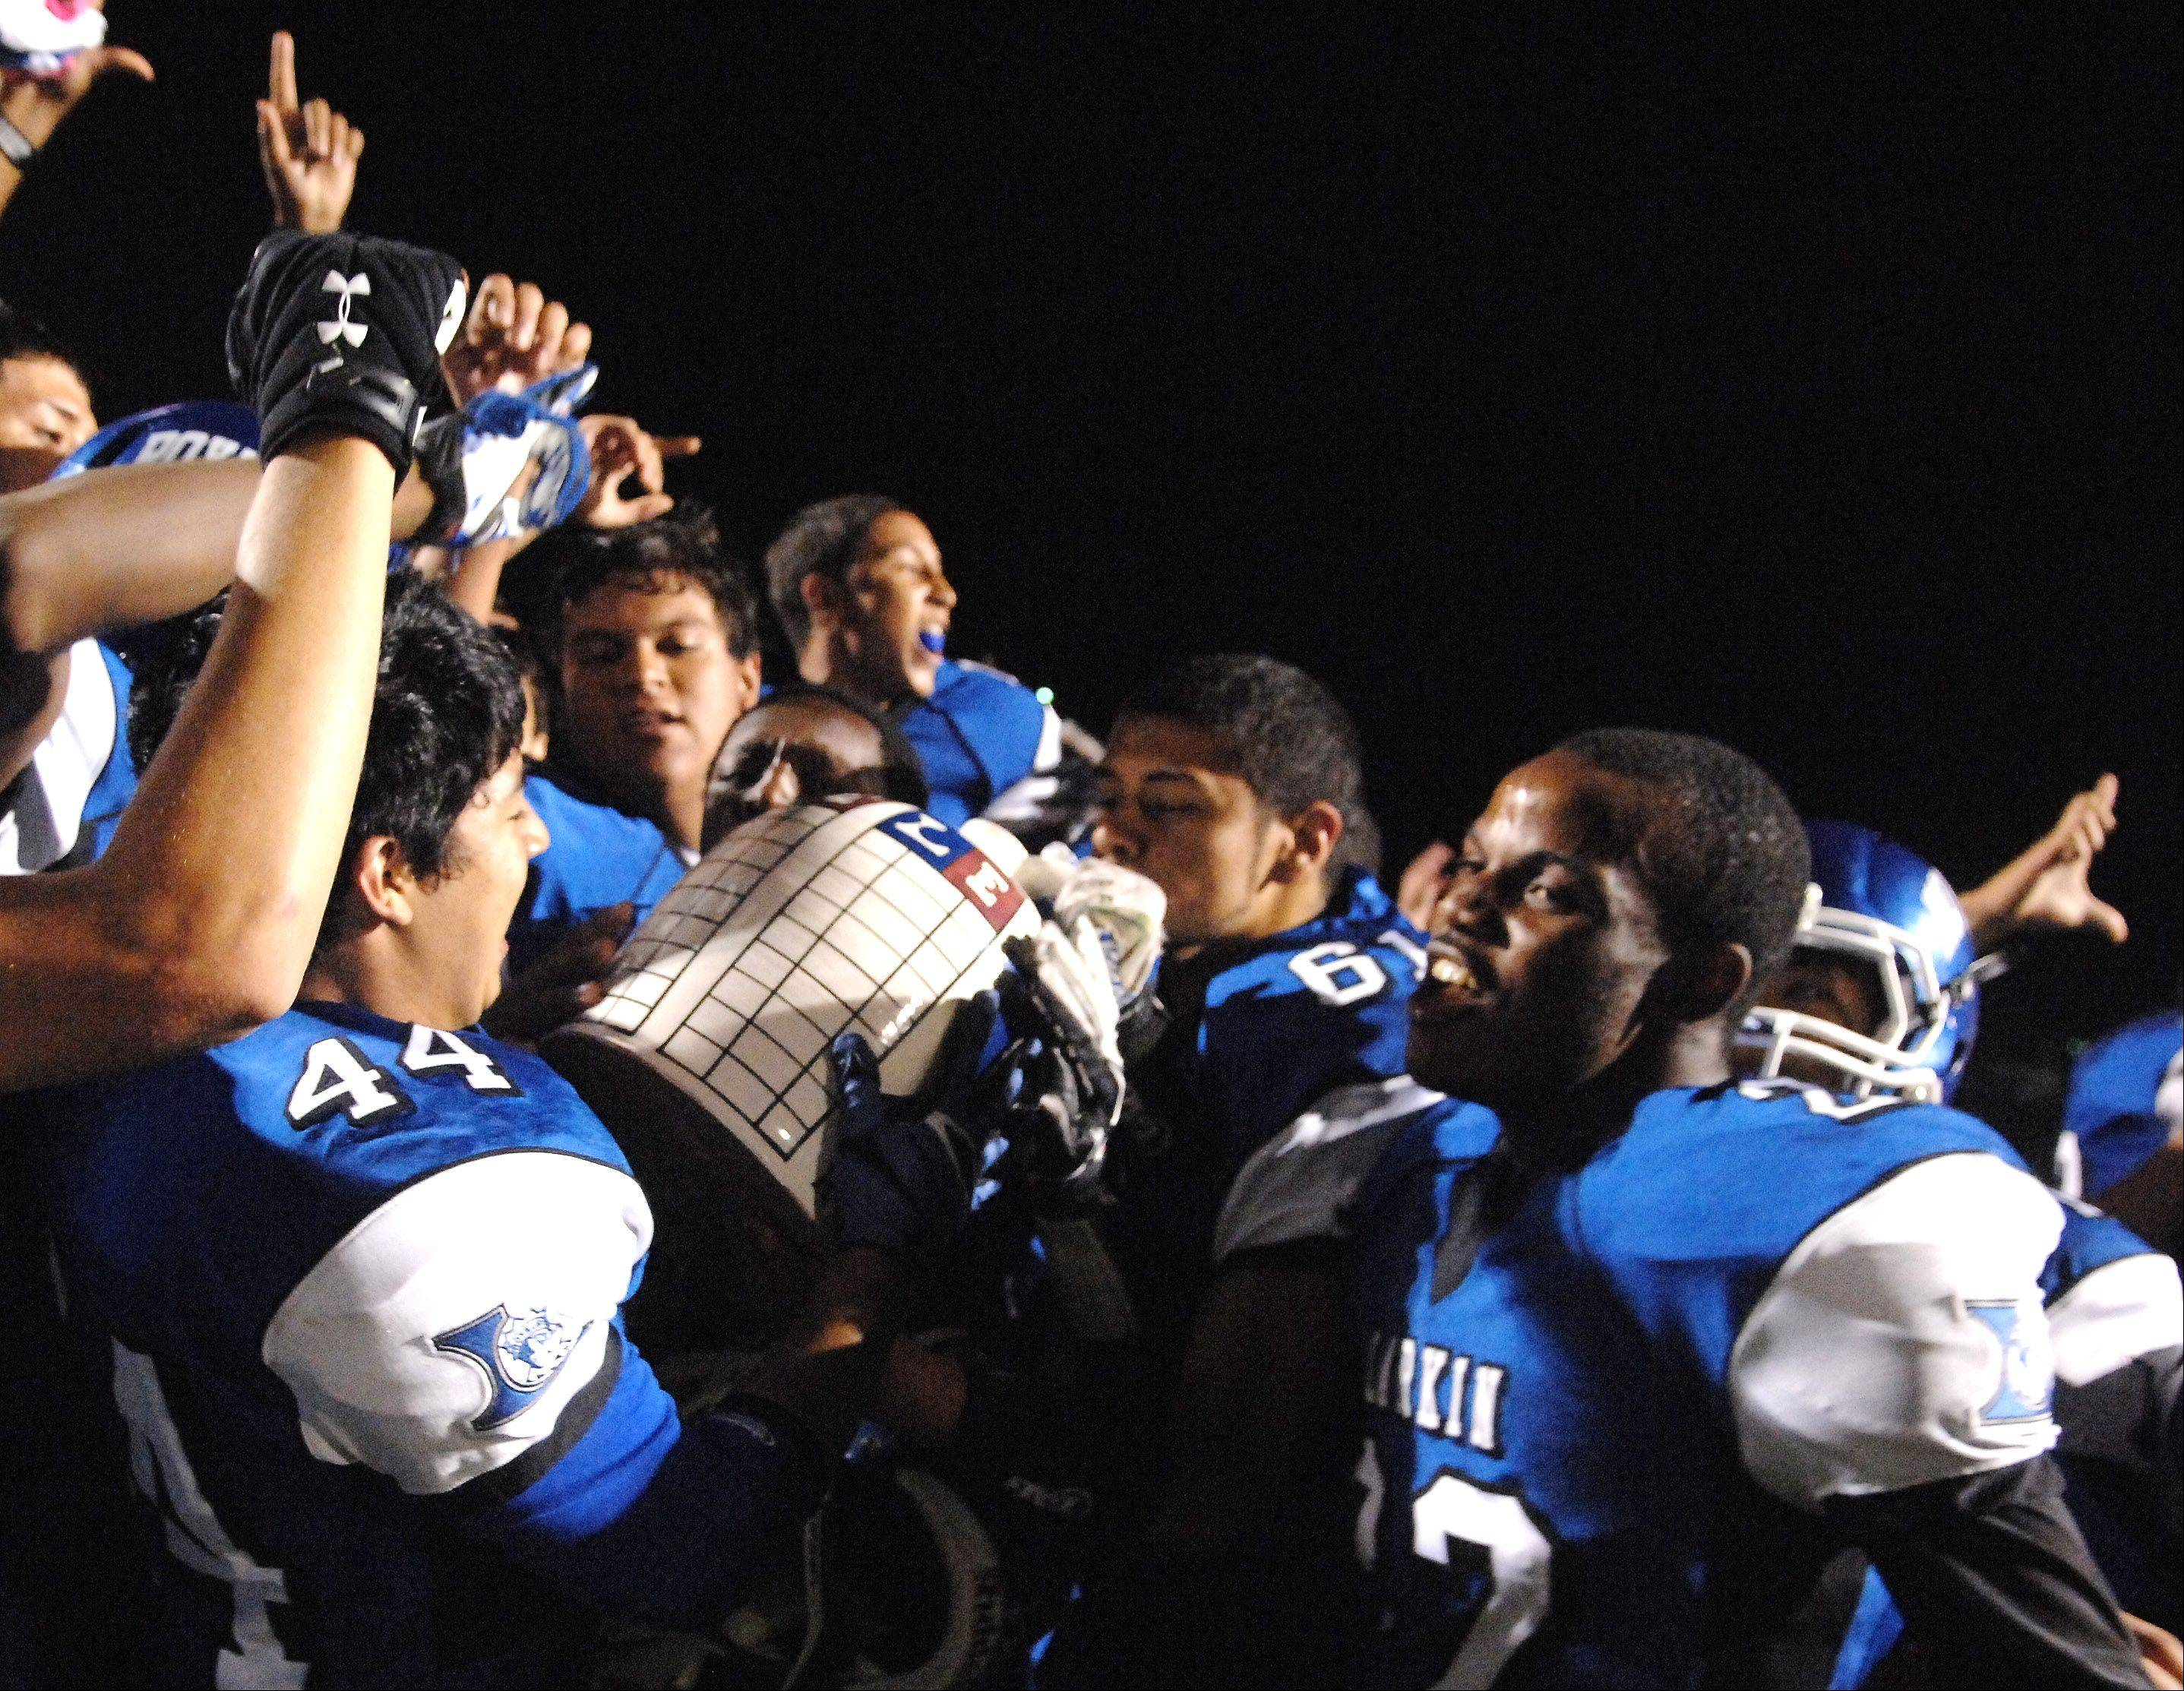 Larkin players celebrate with the Town Jug following their win over Elgin last year. The Royals will look to keep the Jug on the west side for the third straight year when the Royals and Maroons battle at Memorial Field Friday night.